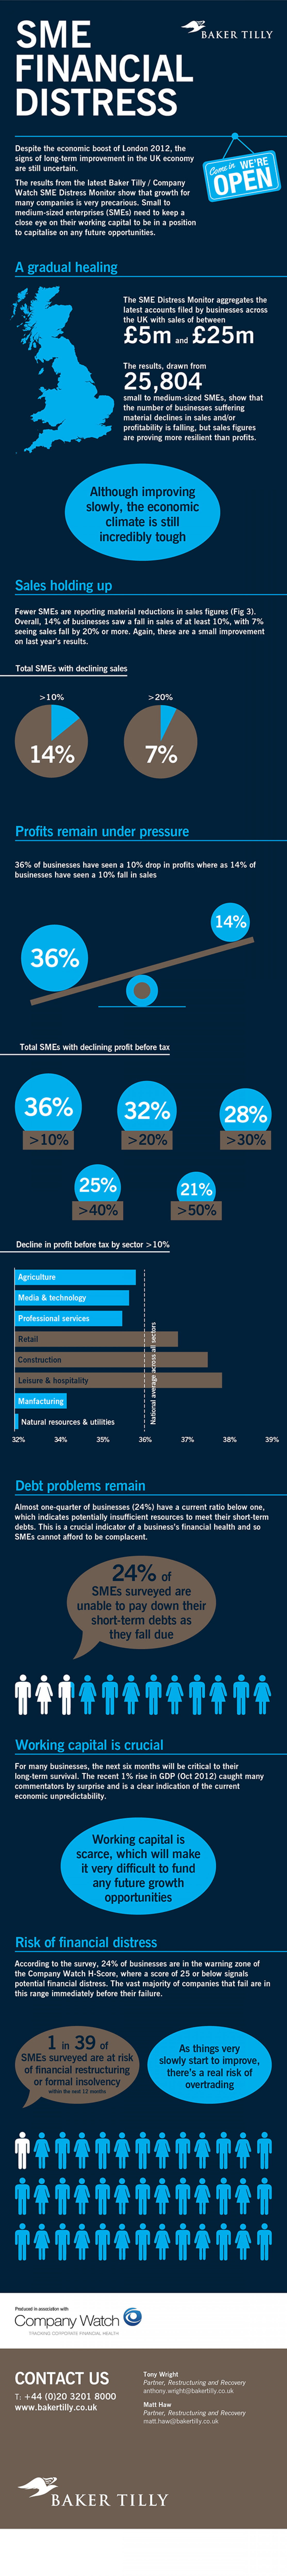 Corporate Restructuring, Turnaround and Recovery infographic from Baker Tilly UK Infographic